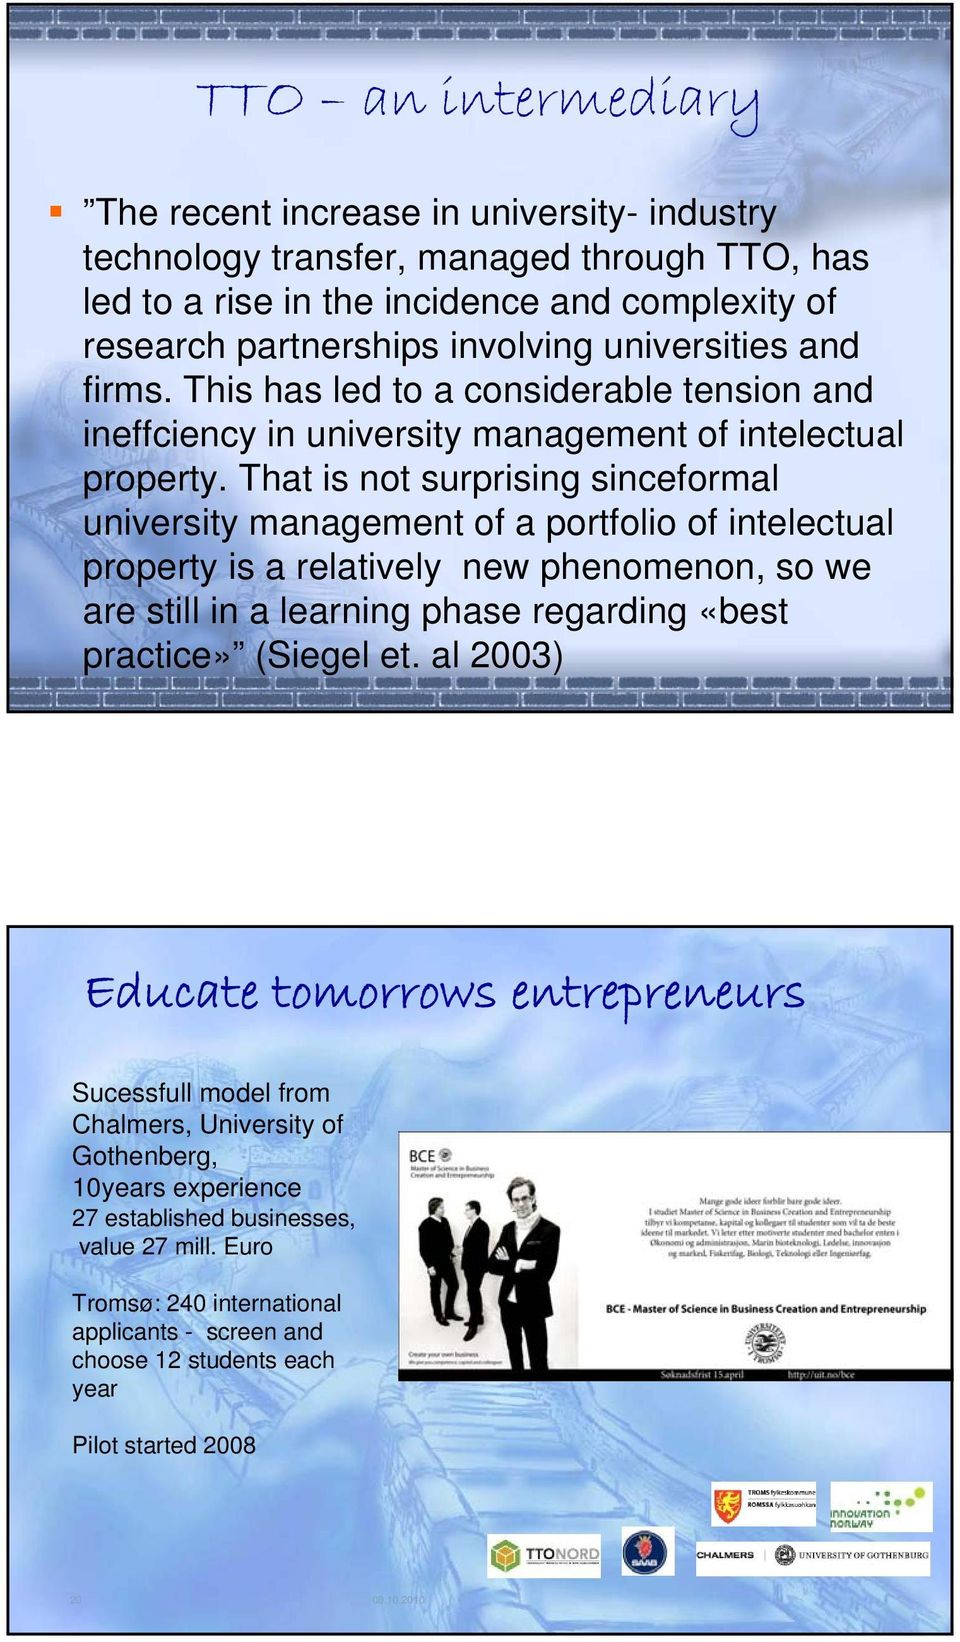 That is not surprising sinceformal university management of a portfolio of intelectual property is a relatively new phenomenon, so we are still in a learning phase regarding «best practice» (Siegel